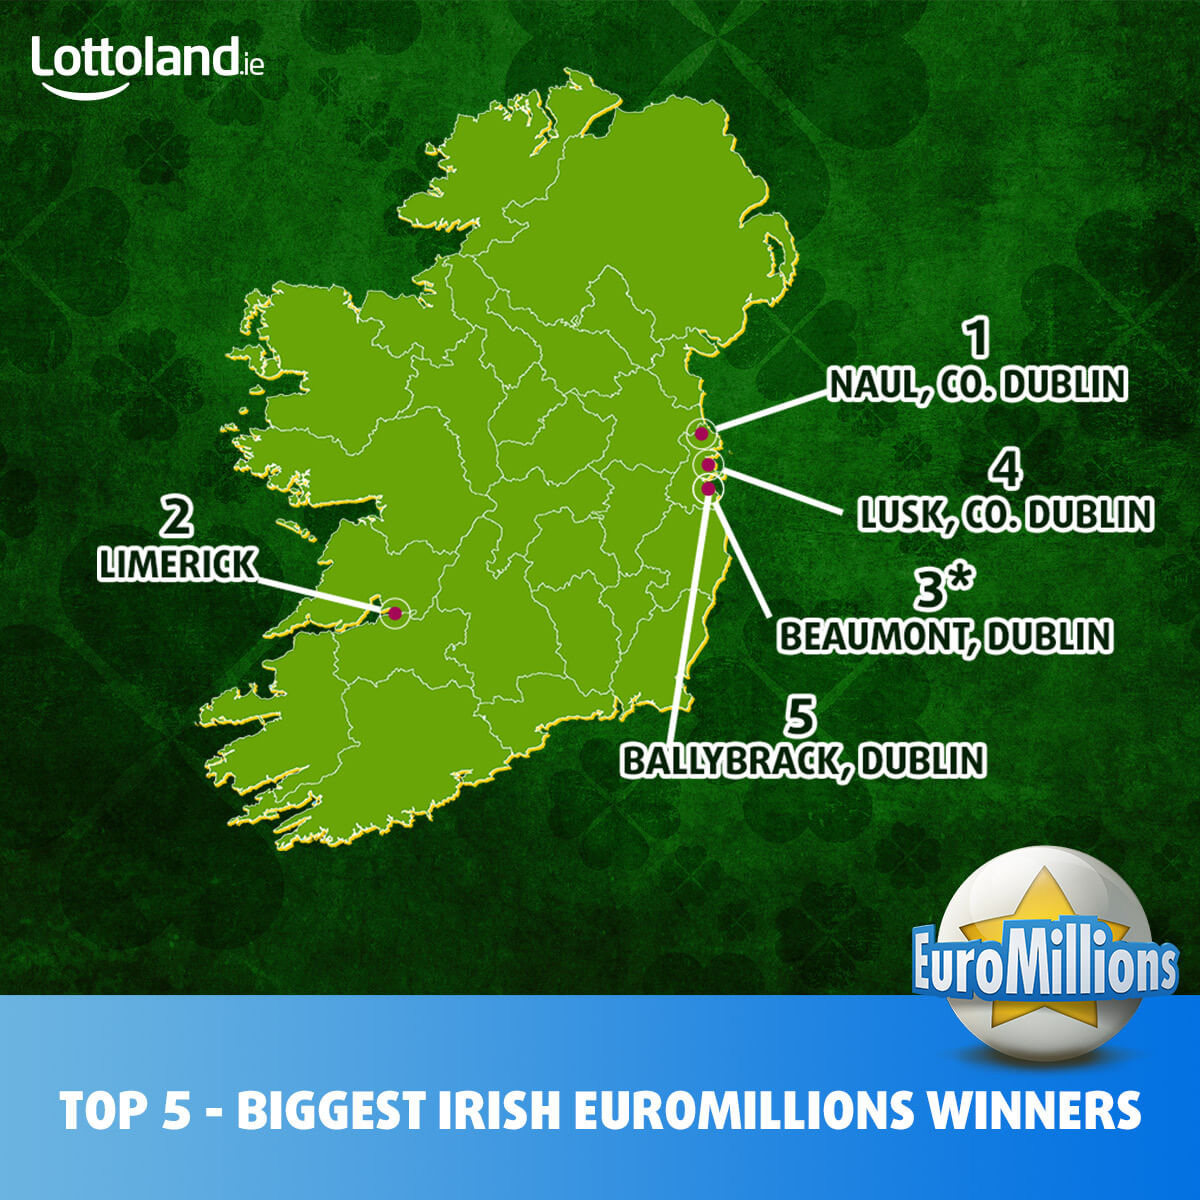 Map showing the location of the top 5 biggest Irish EuroMillions winners